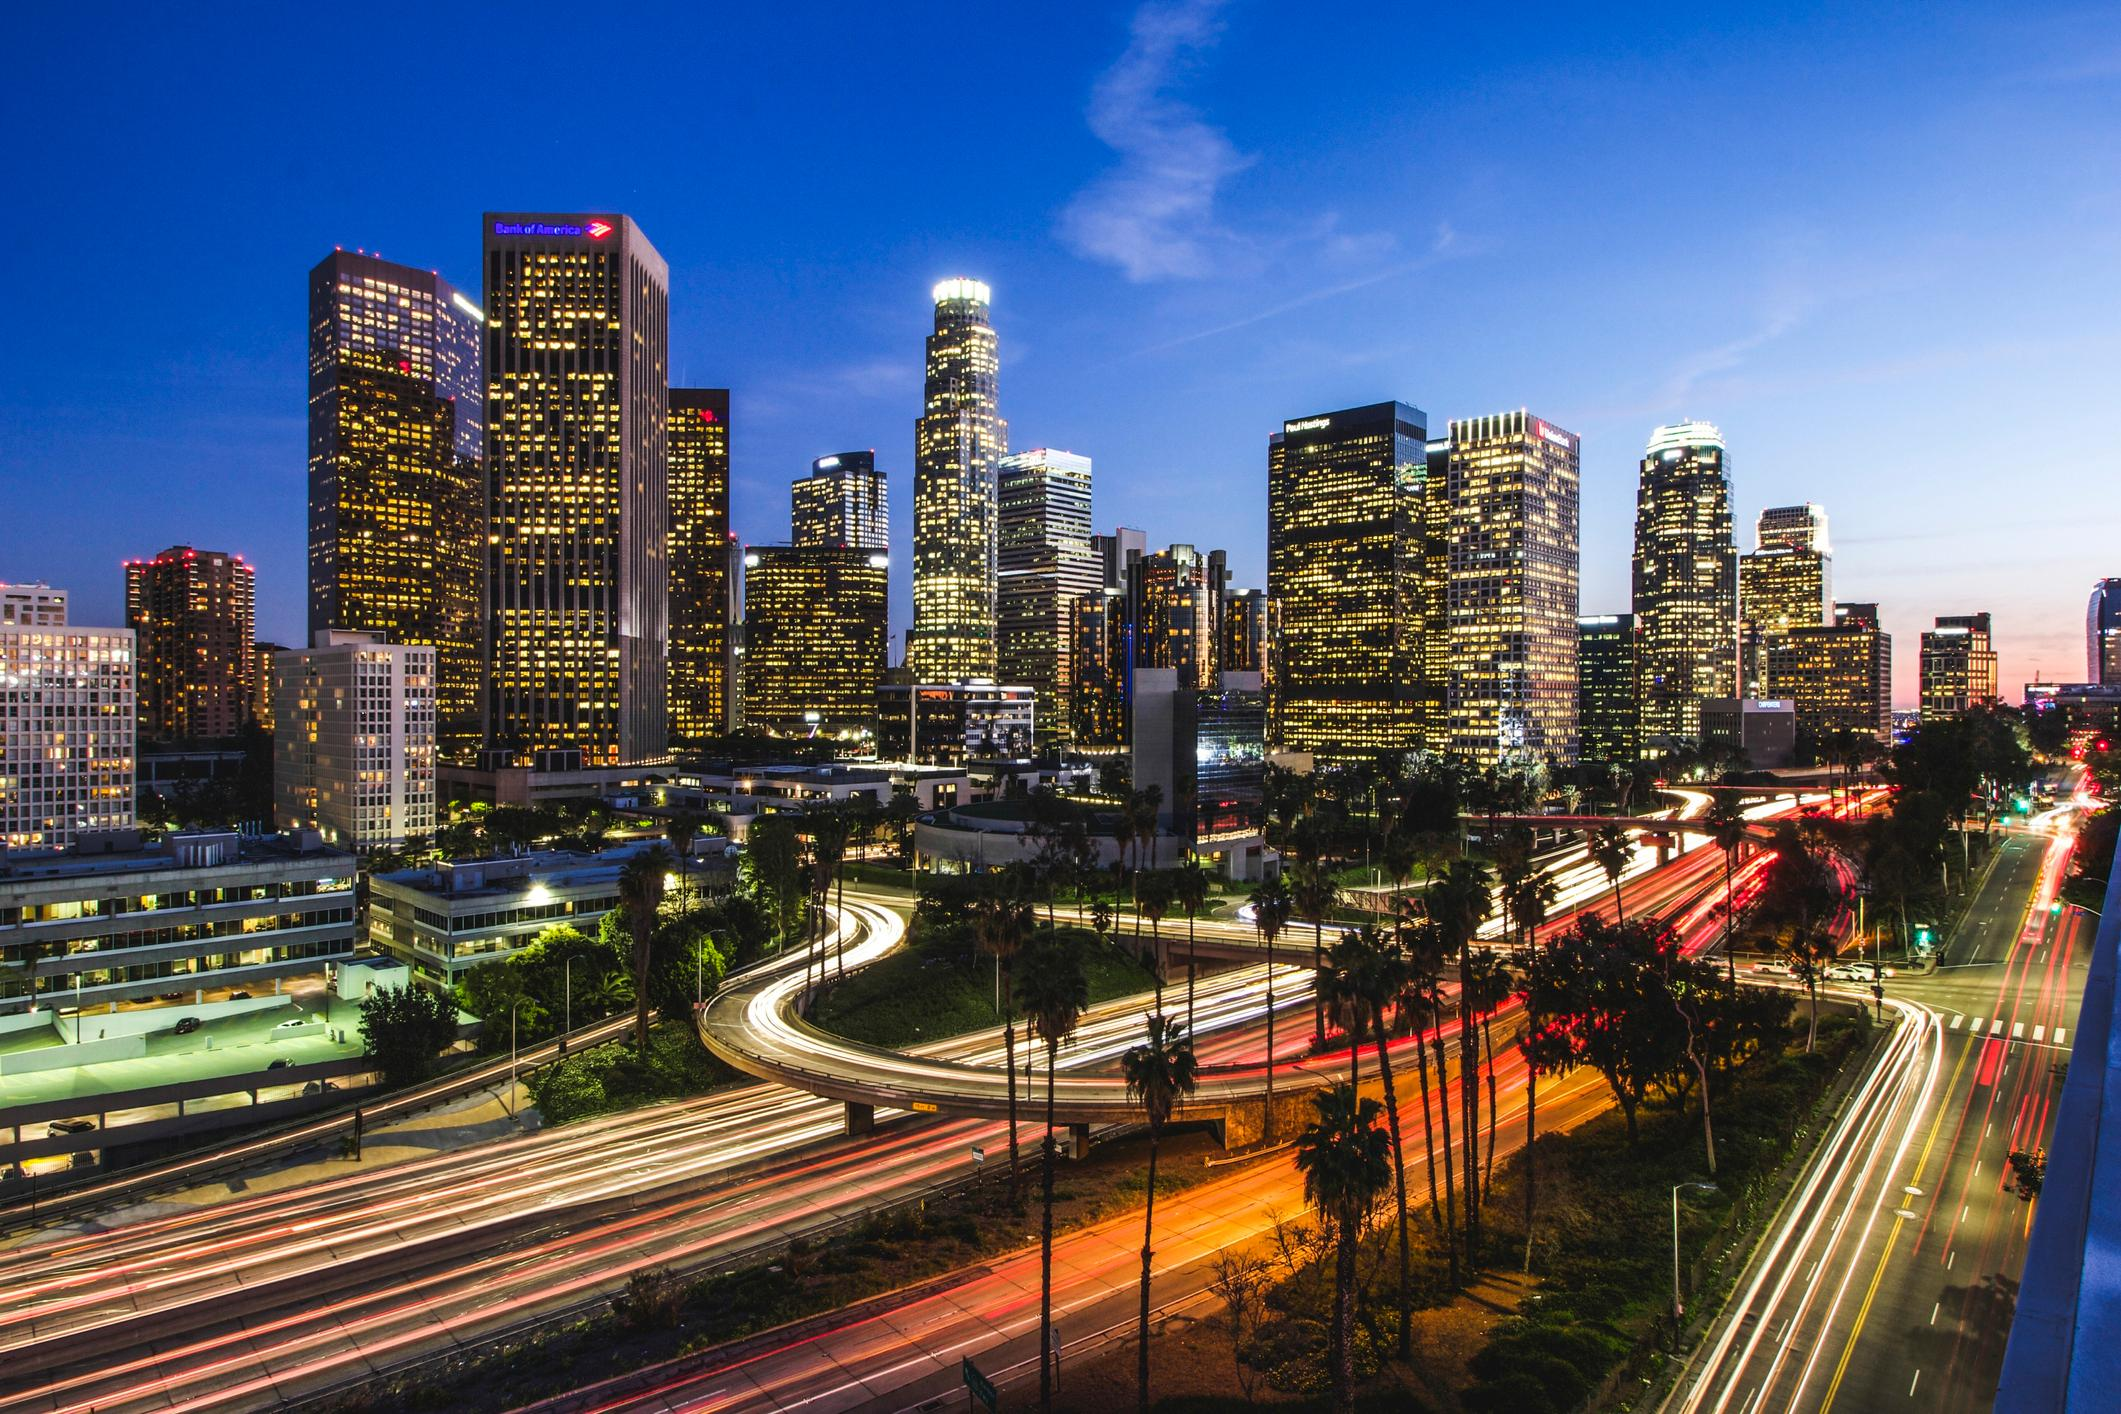 21 Best Hotels In Los Angeles Hotels From 27 Night Kayak